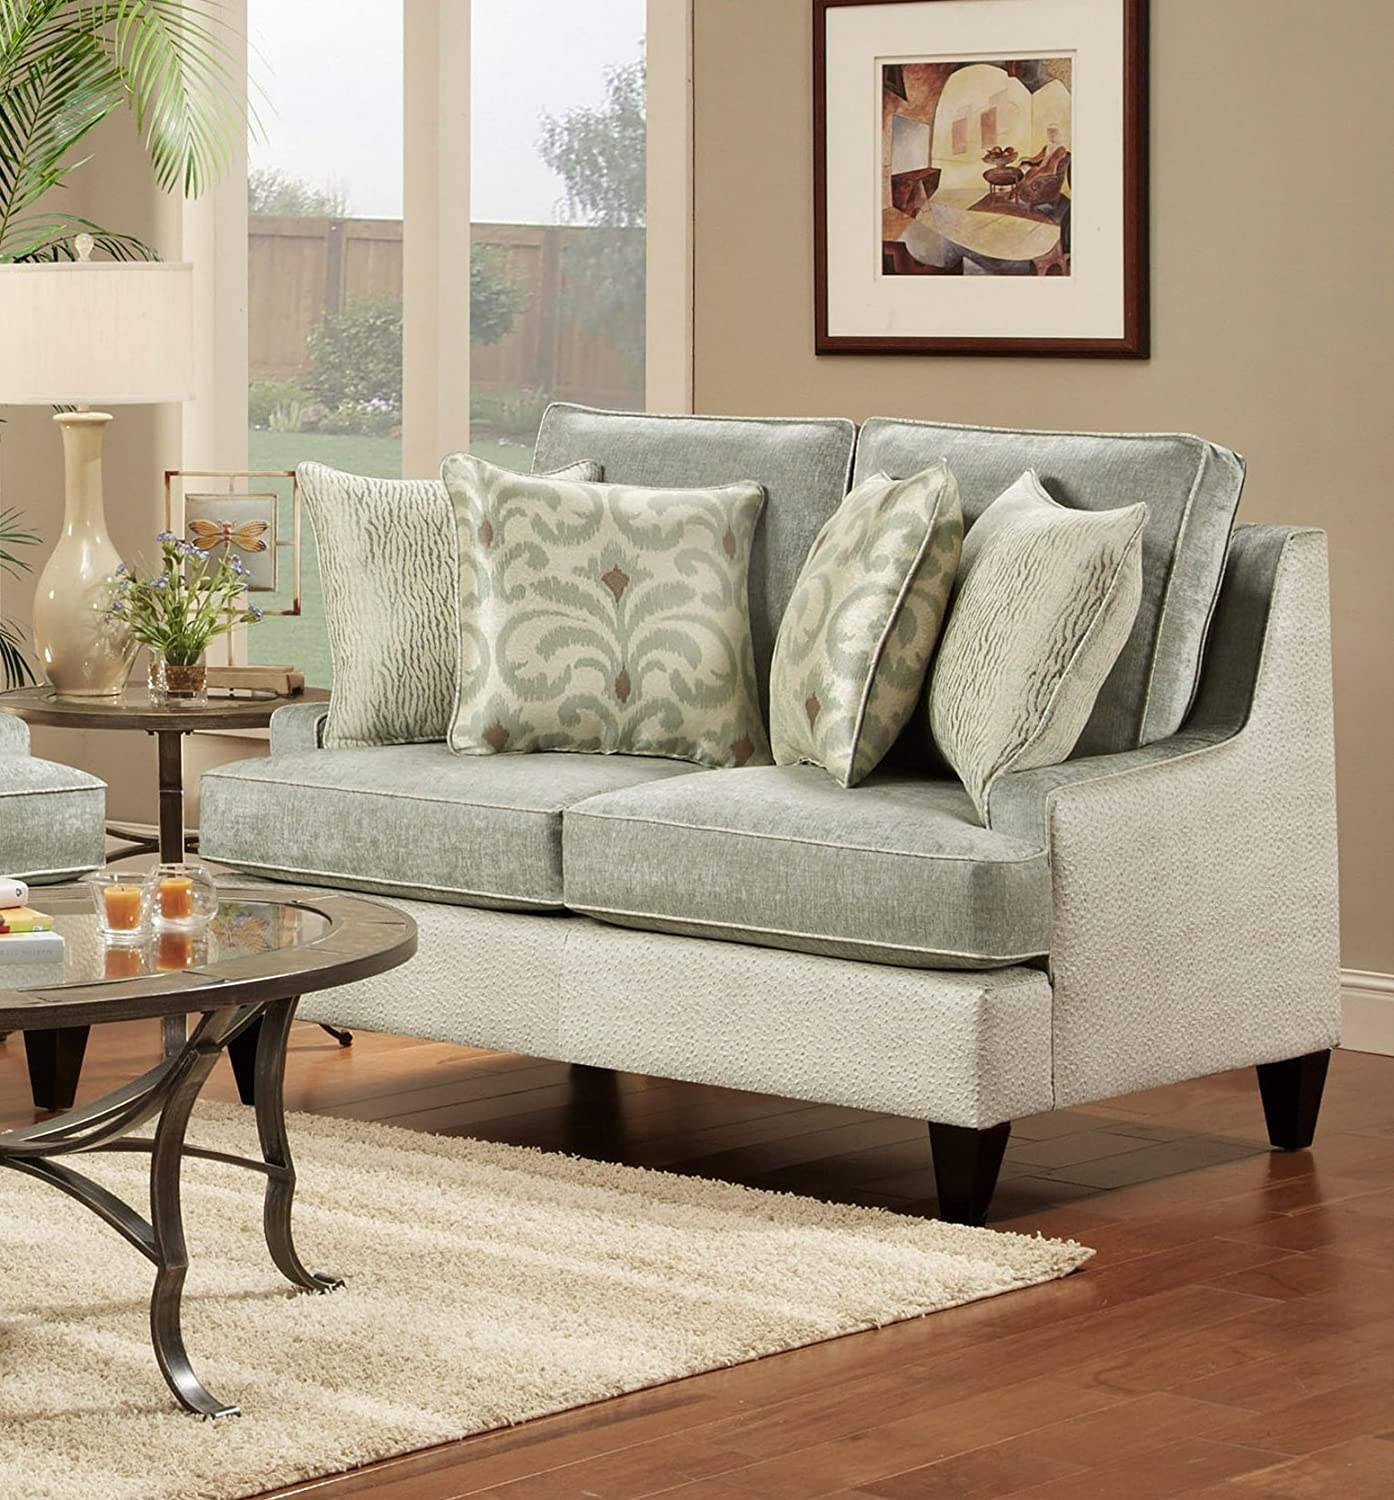 Chelsea Home Furniture Catania Loveseat - Xanadu Crystal/Emu Ice with Amisha Climate/McAniff Algae Pillows